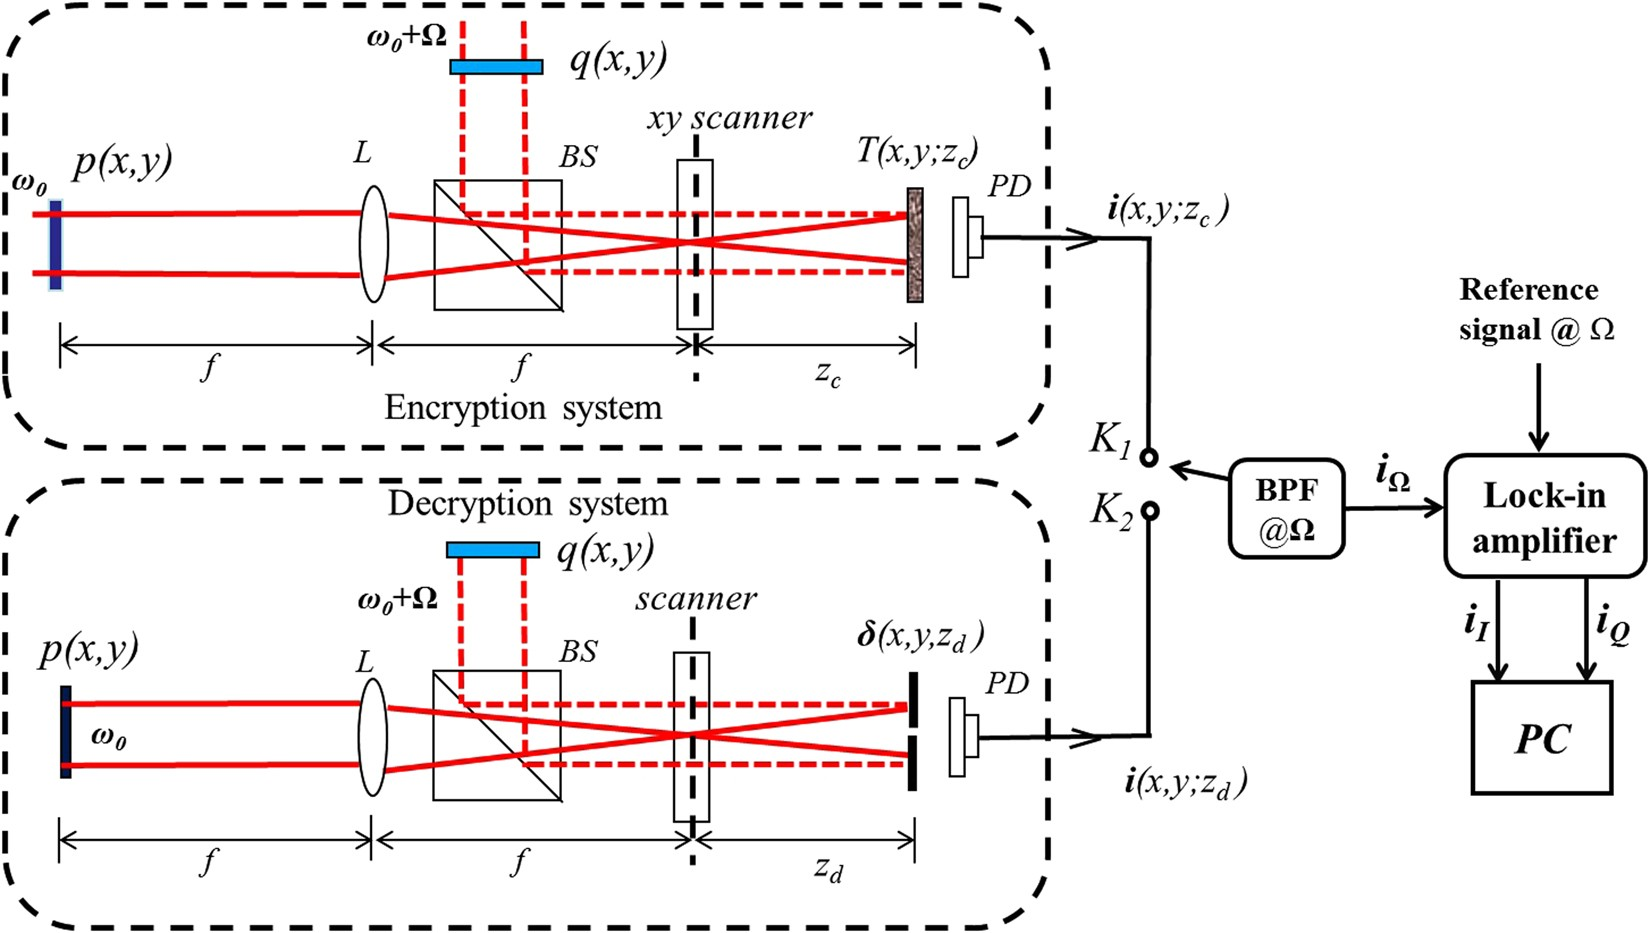 Optical cryptography with biometrics for multi-depth objects